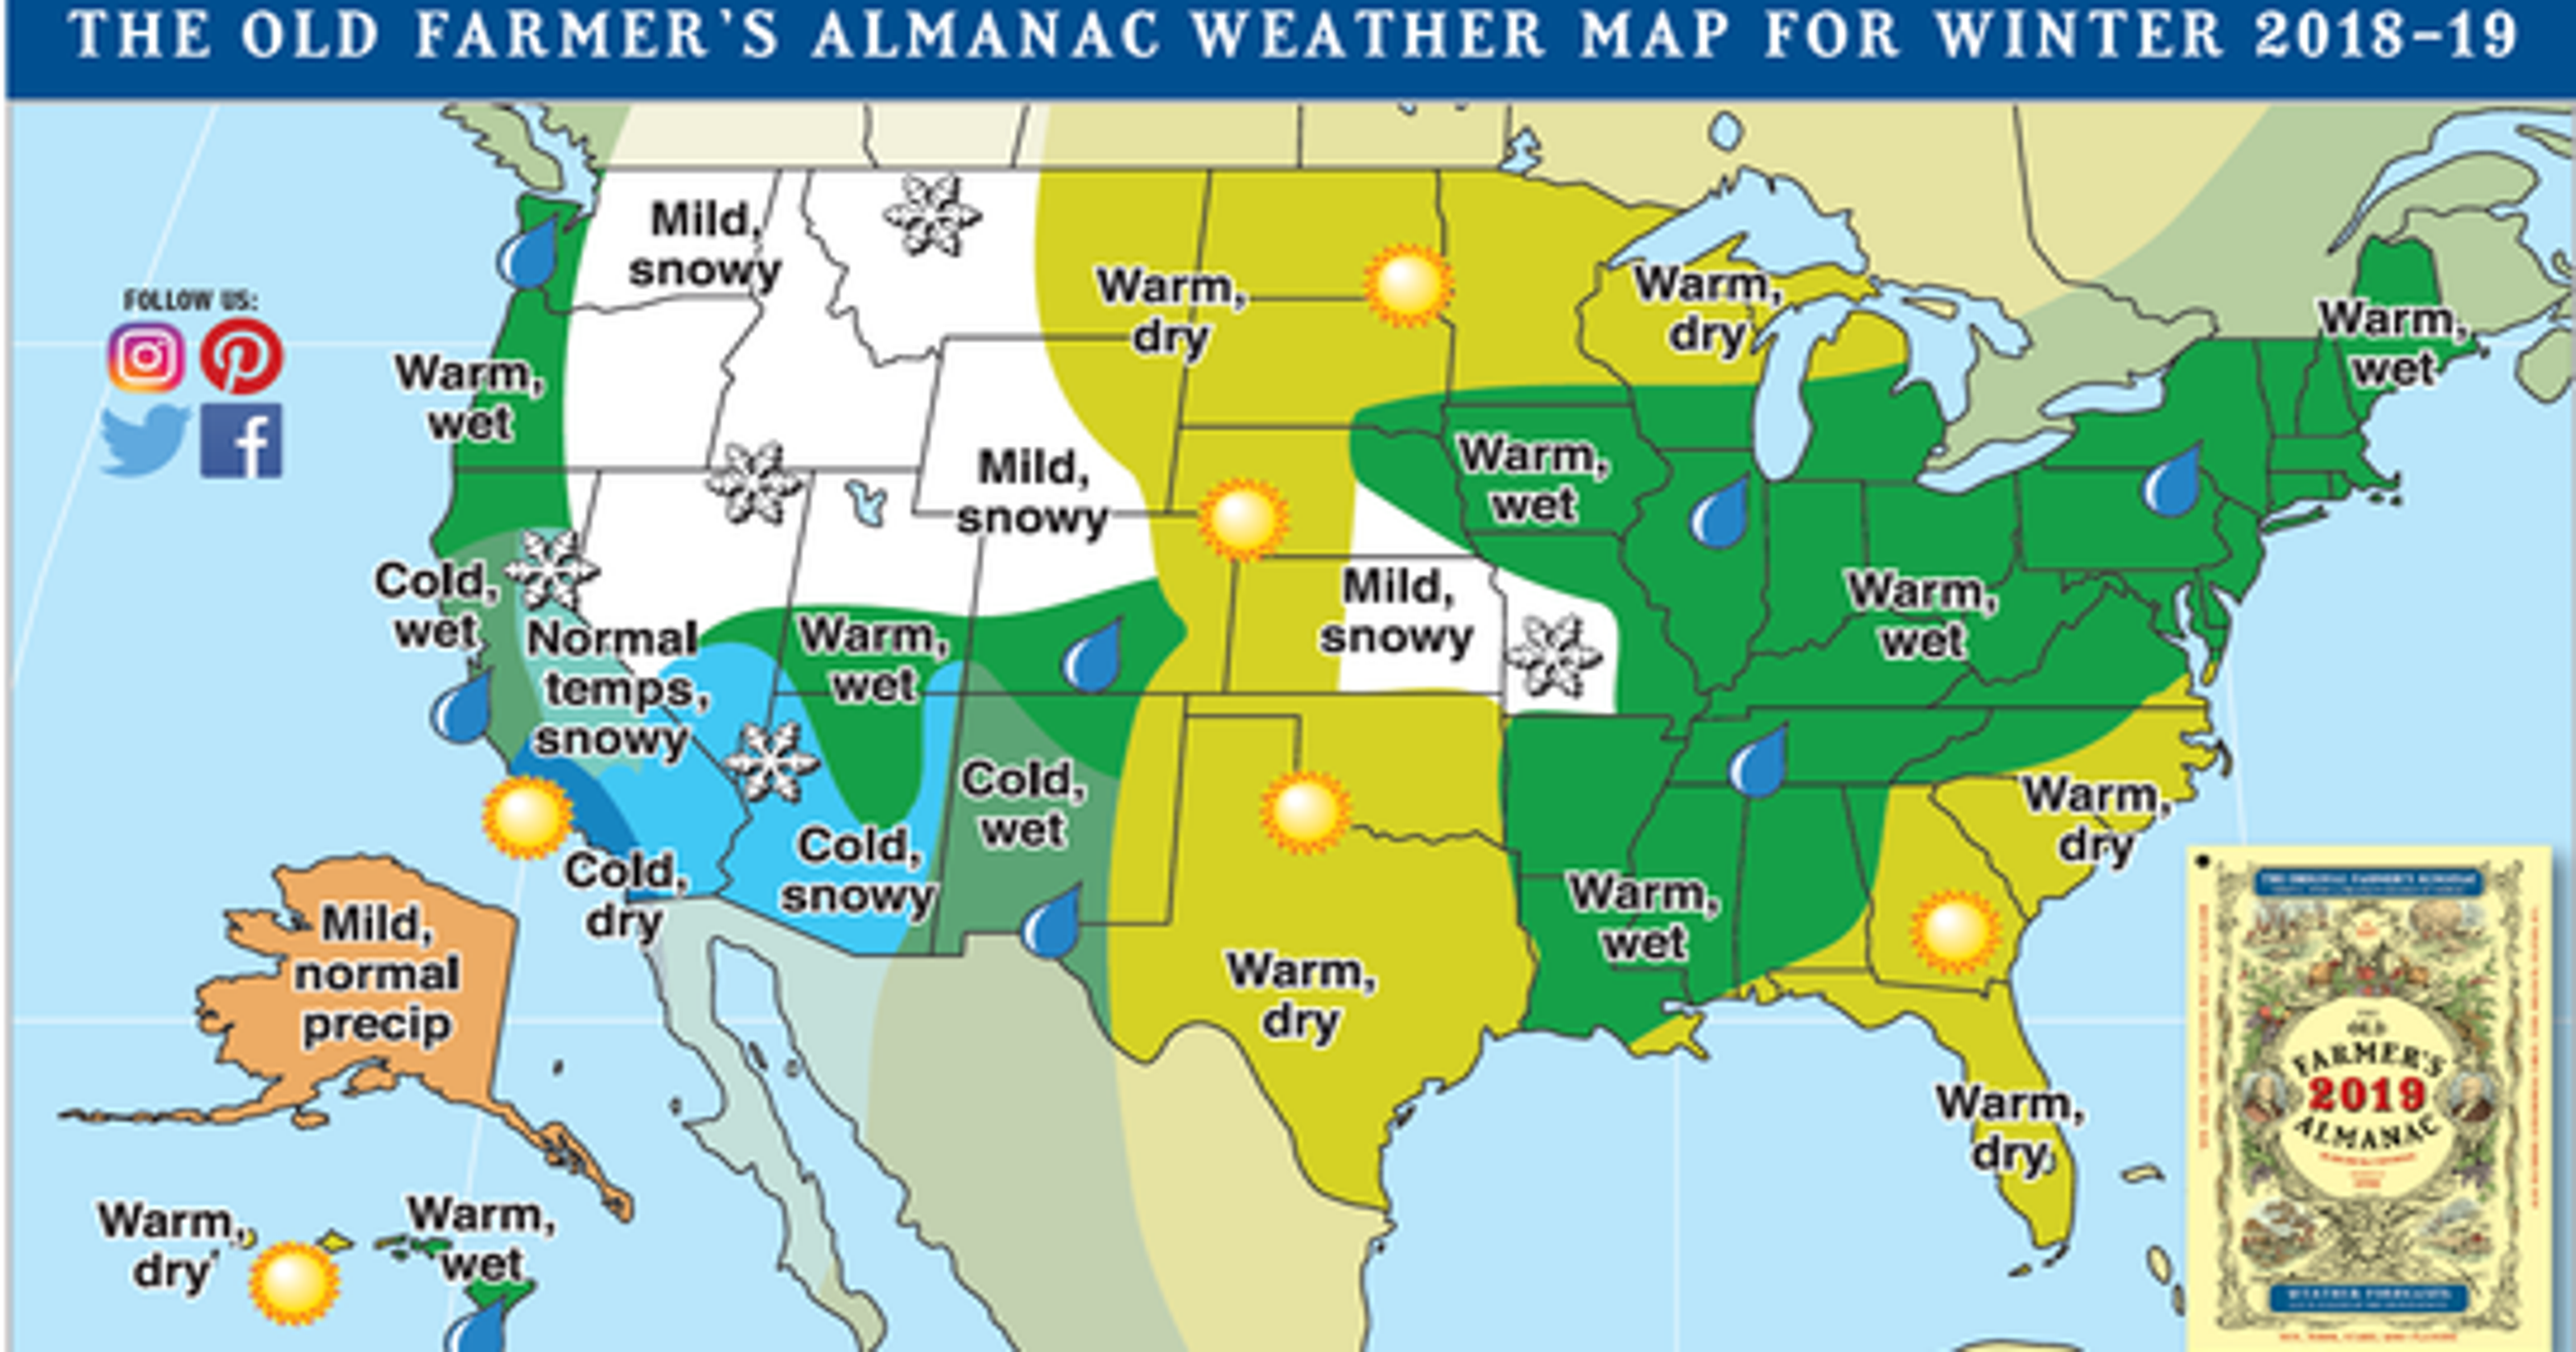 Farmers Almanac The Prediction For 2018 Winter In Michigan - Map-of-us-snowfall